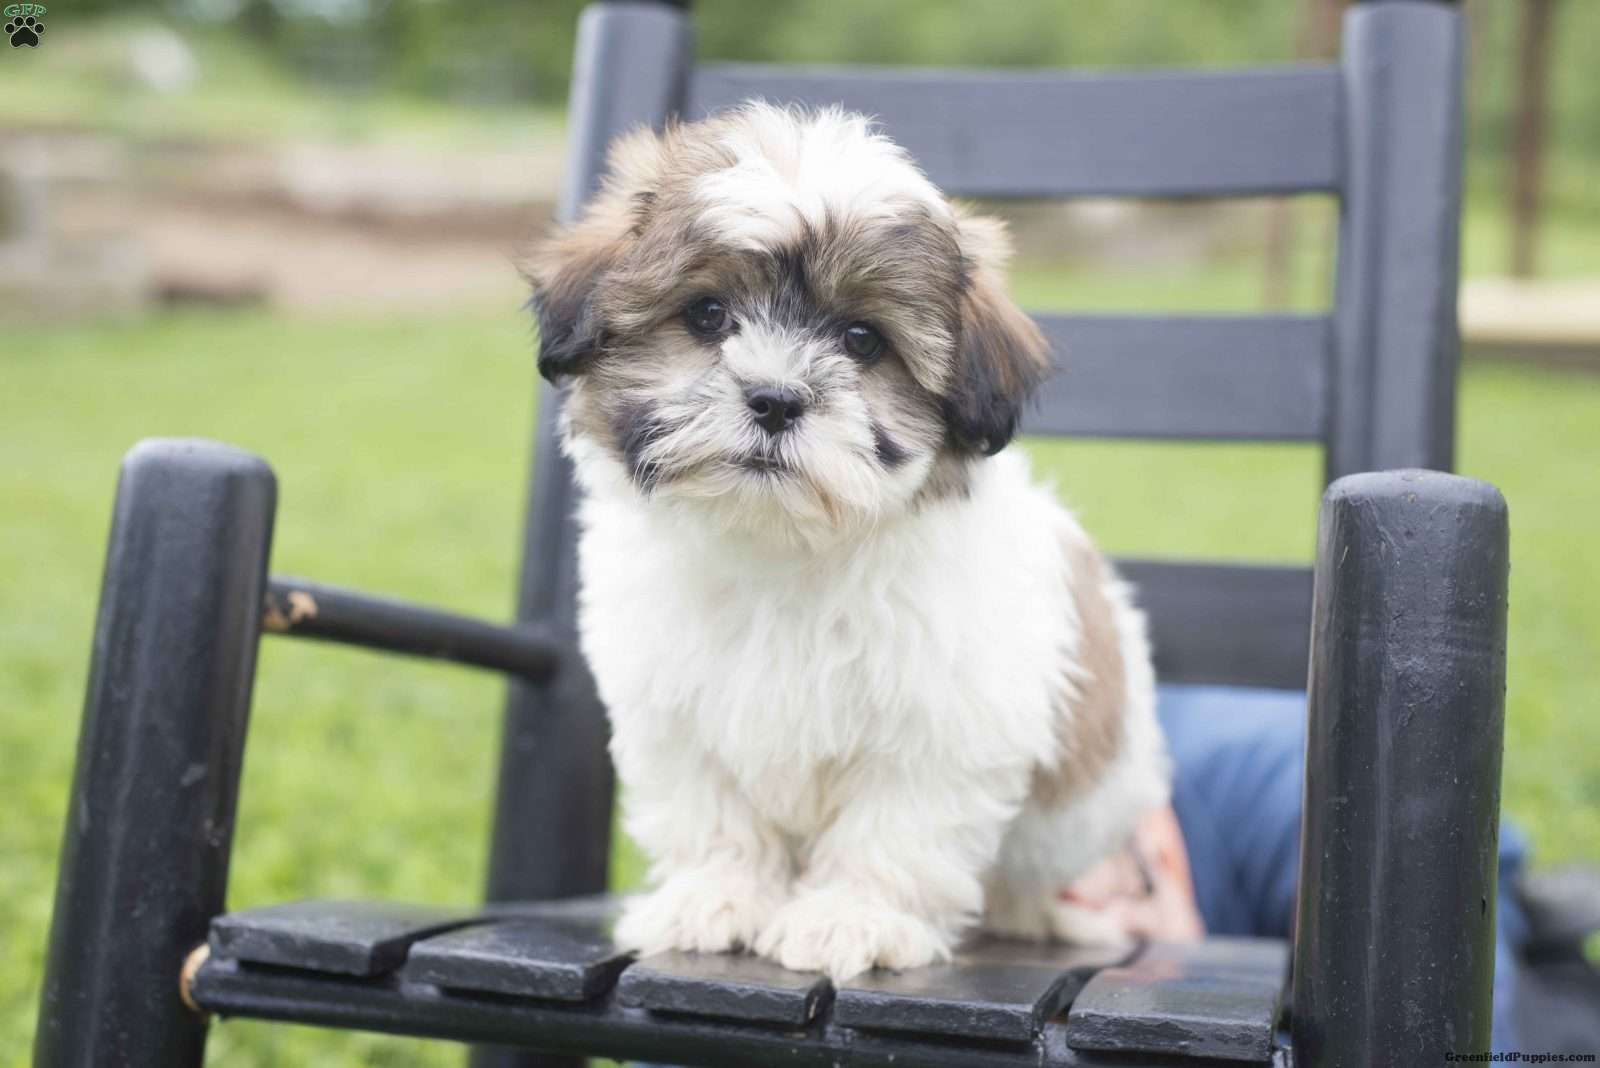 Shichon puppies for sale in indiana - A Shichon Teddy Bear Puppy Named Tara